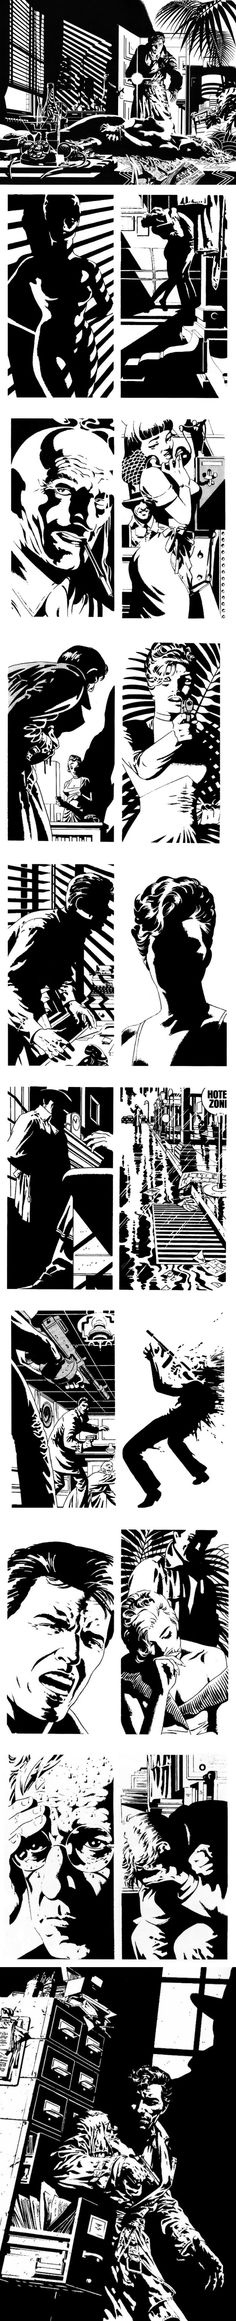 "Selection of panels and plates from Jim #Steranko's Raymond Chandler story, ""Red Tide""."